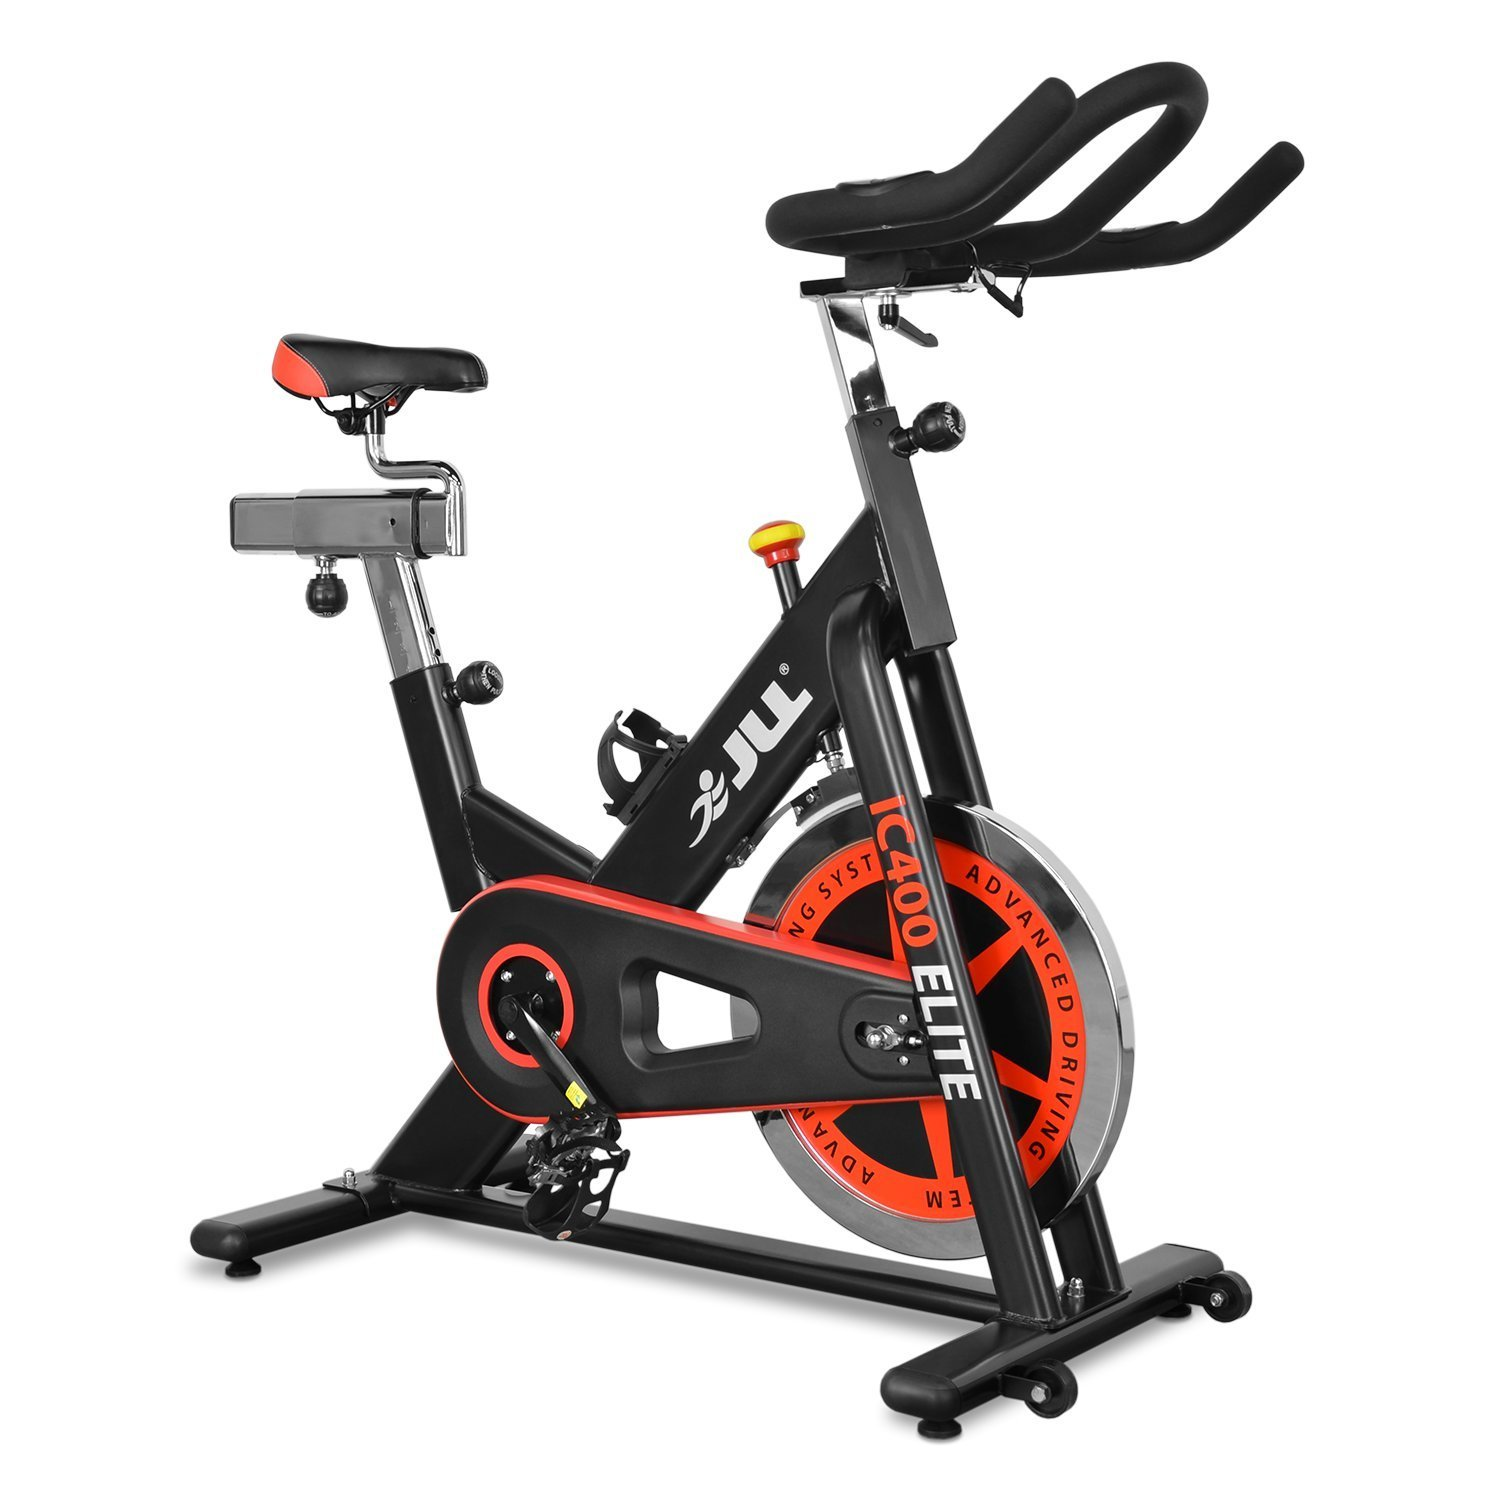 JLL IC400 ELITE Premium Indoor Exercise Bike Review